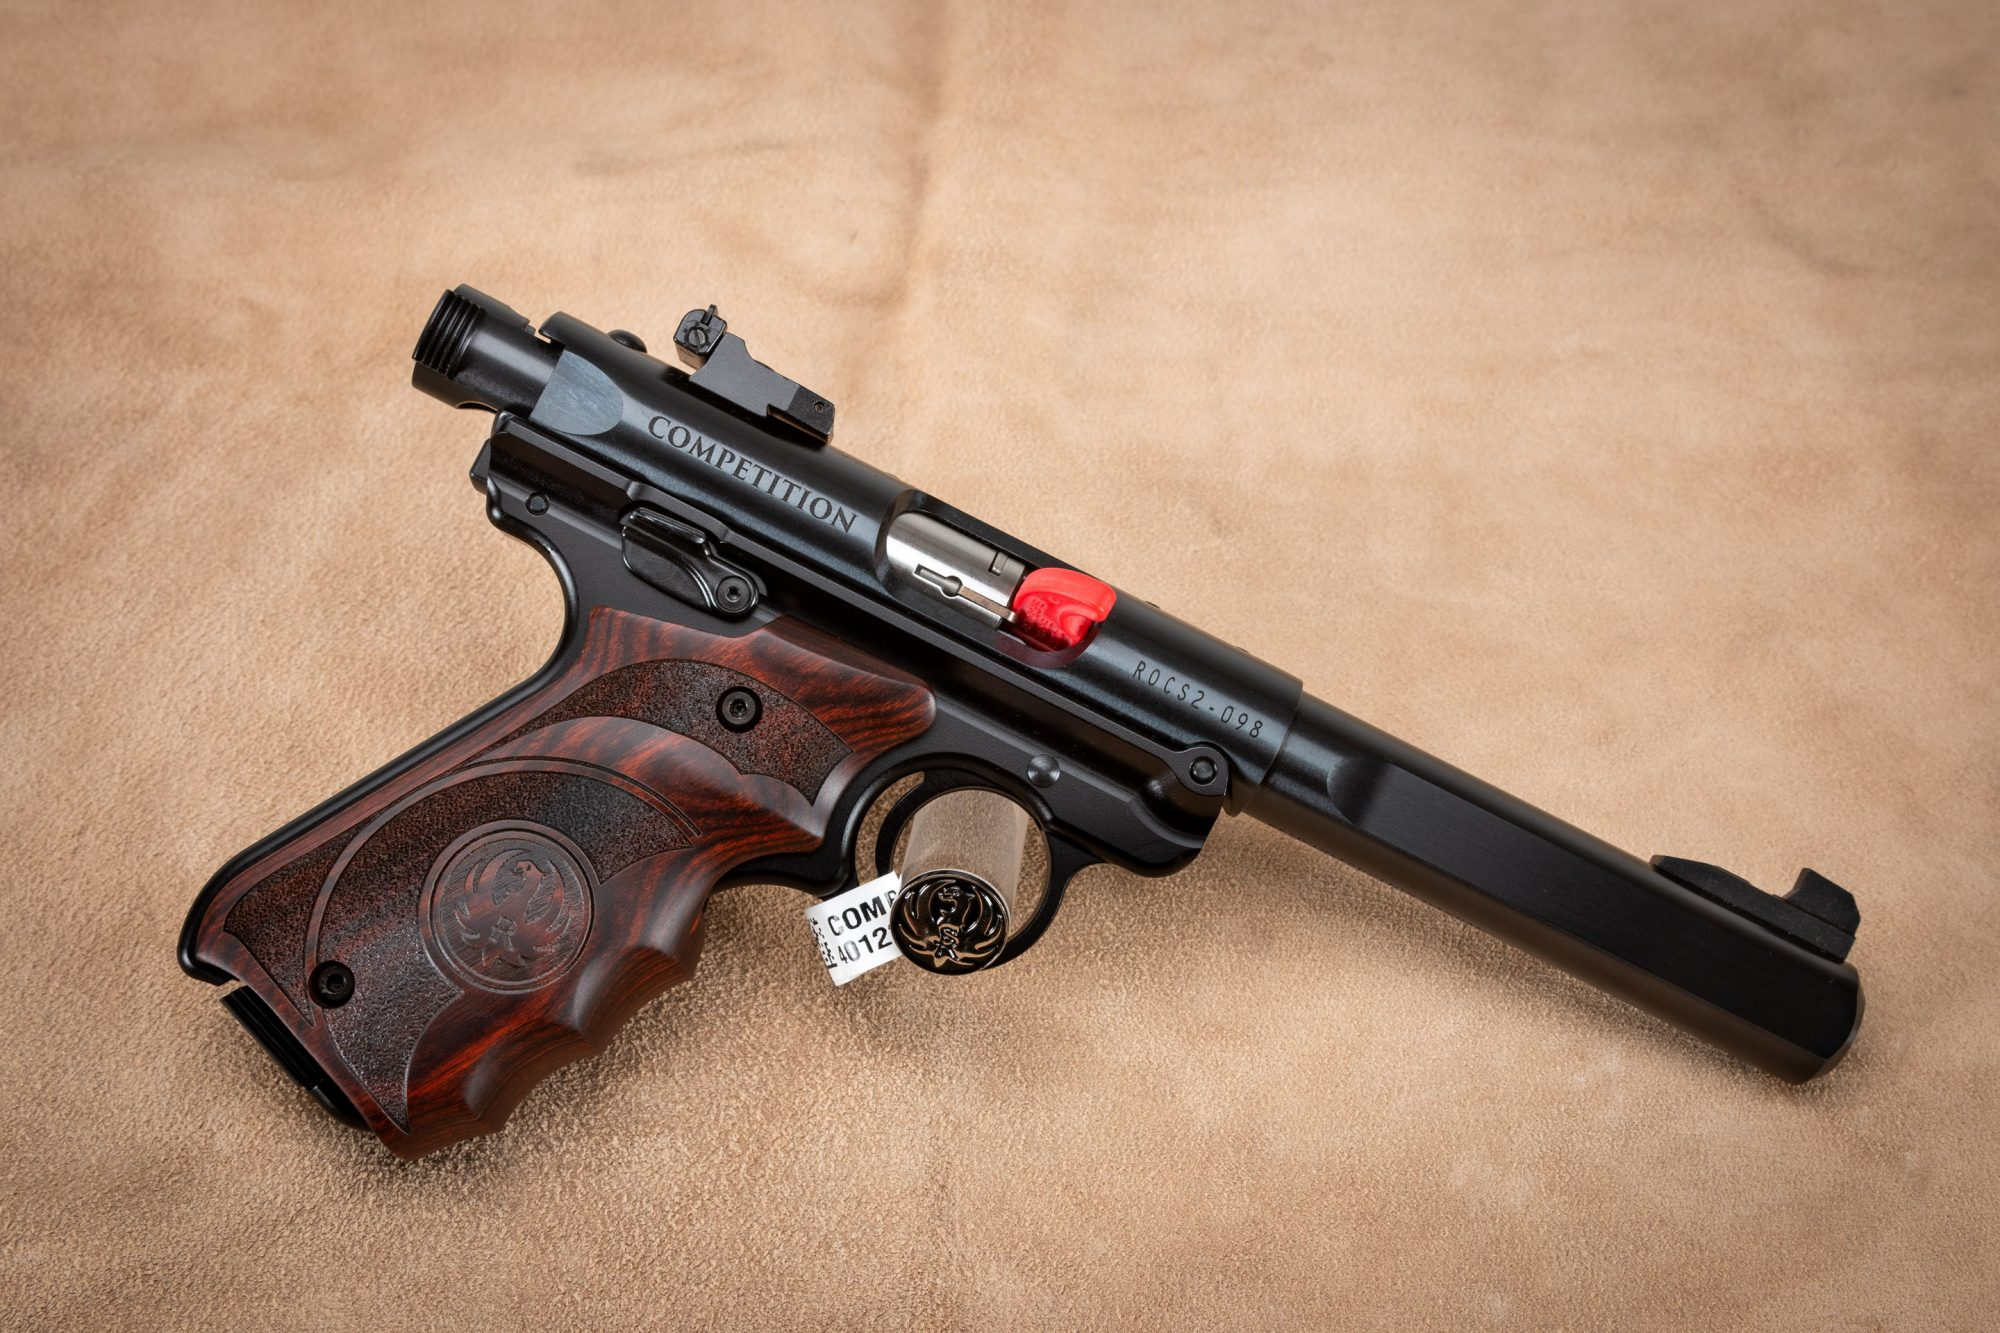 Photo of a Turnbull Ruger ROCS 5 Mark IV with factory blued barrel